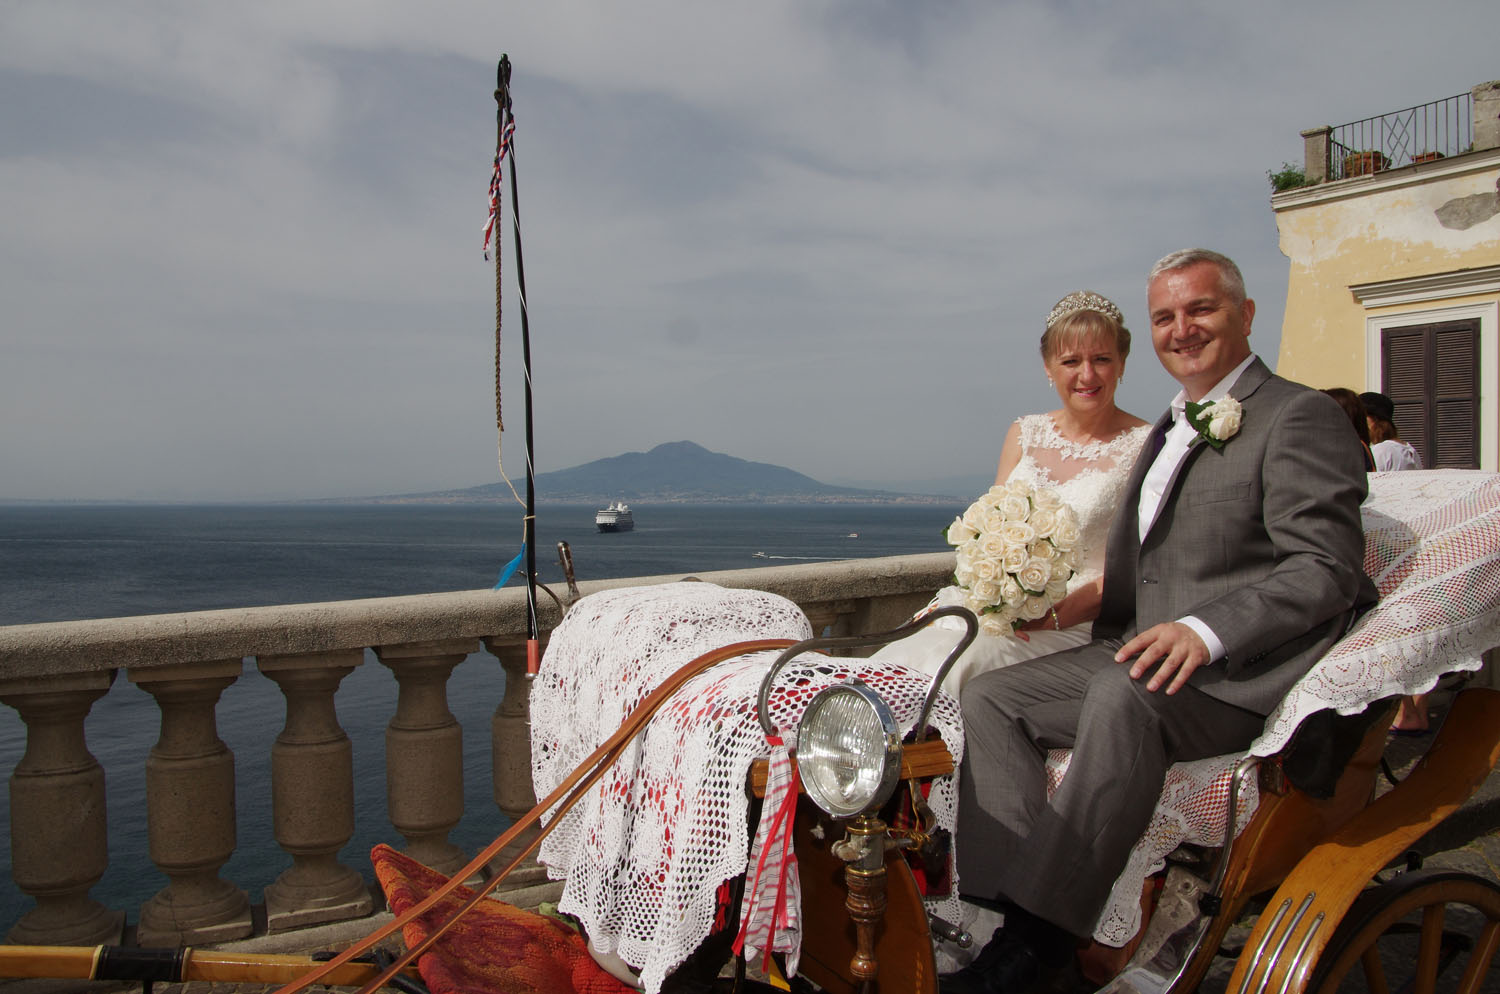 Bride and Groom in a horse drawn carriage on the way to their wedding.